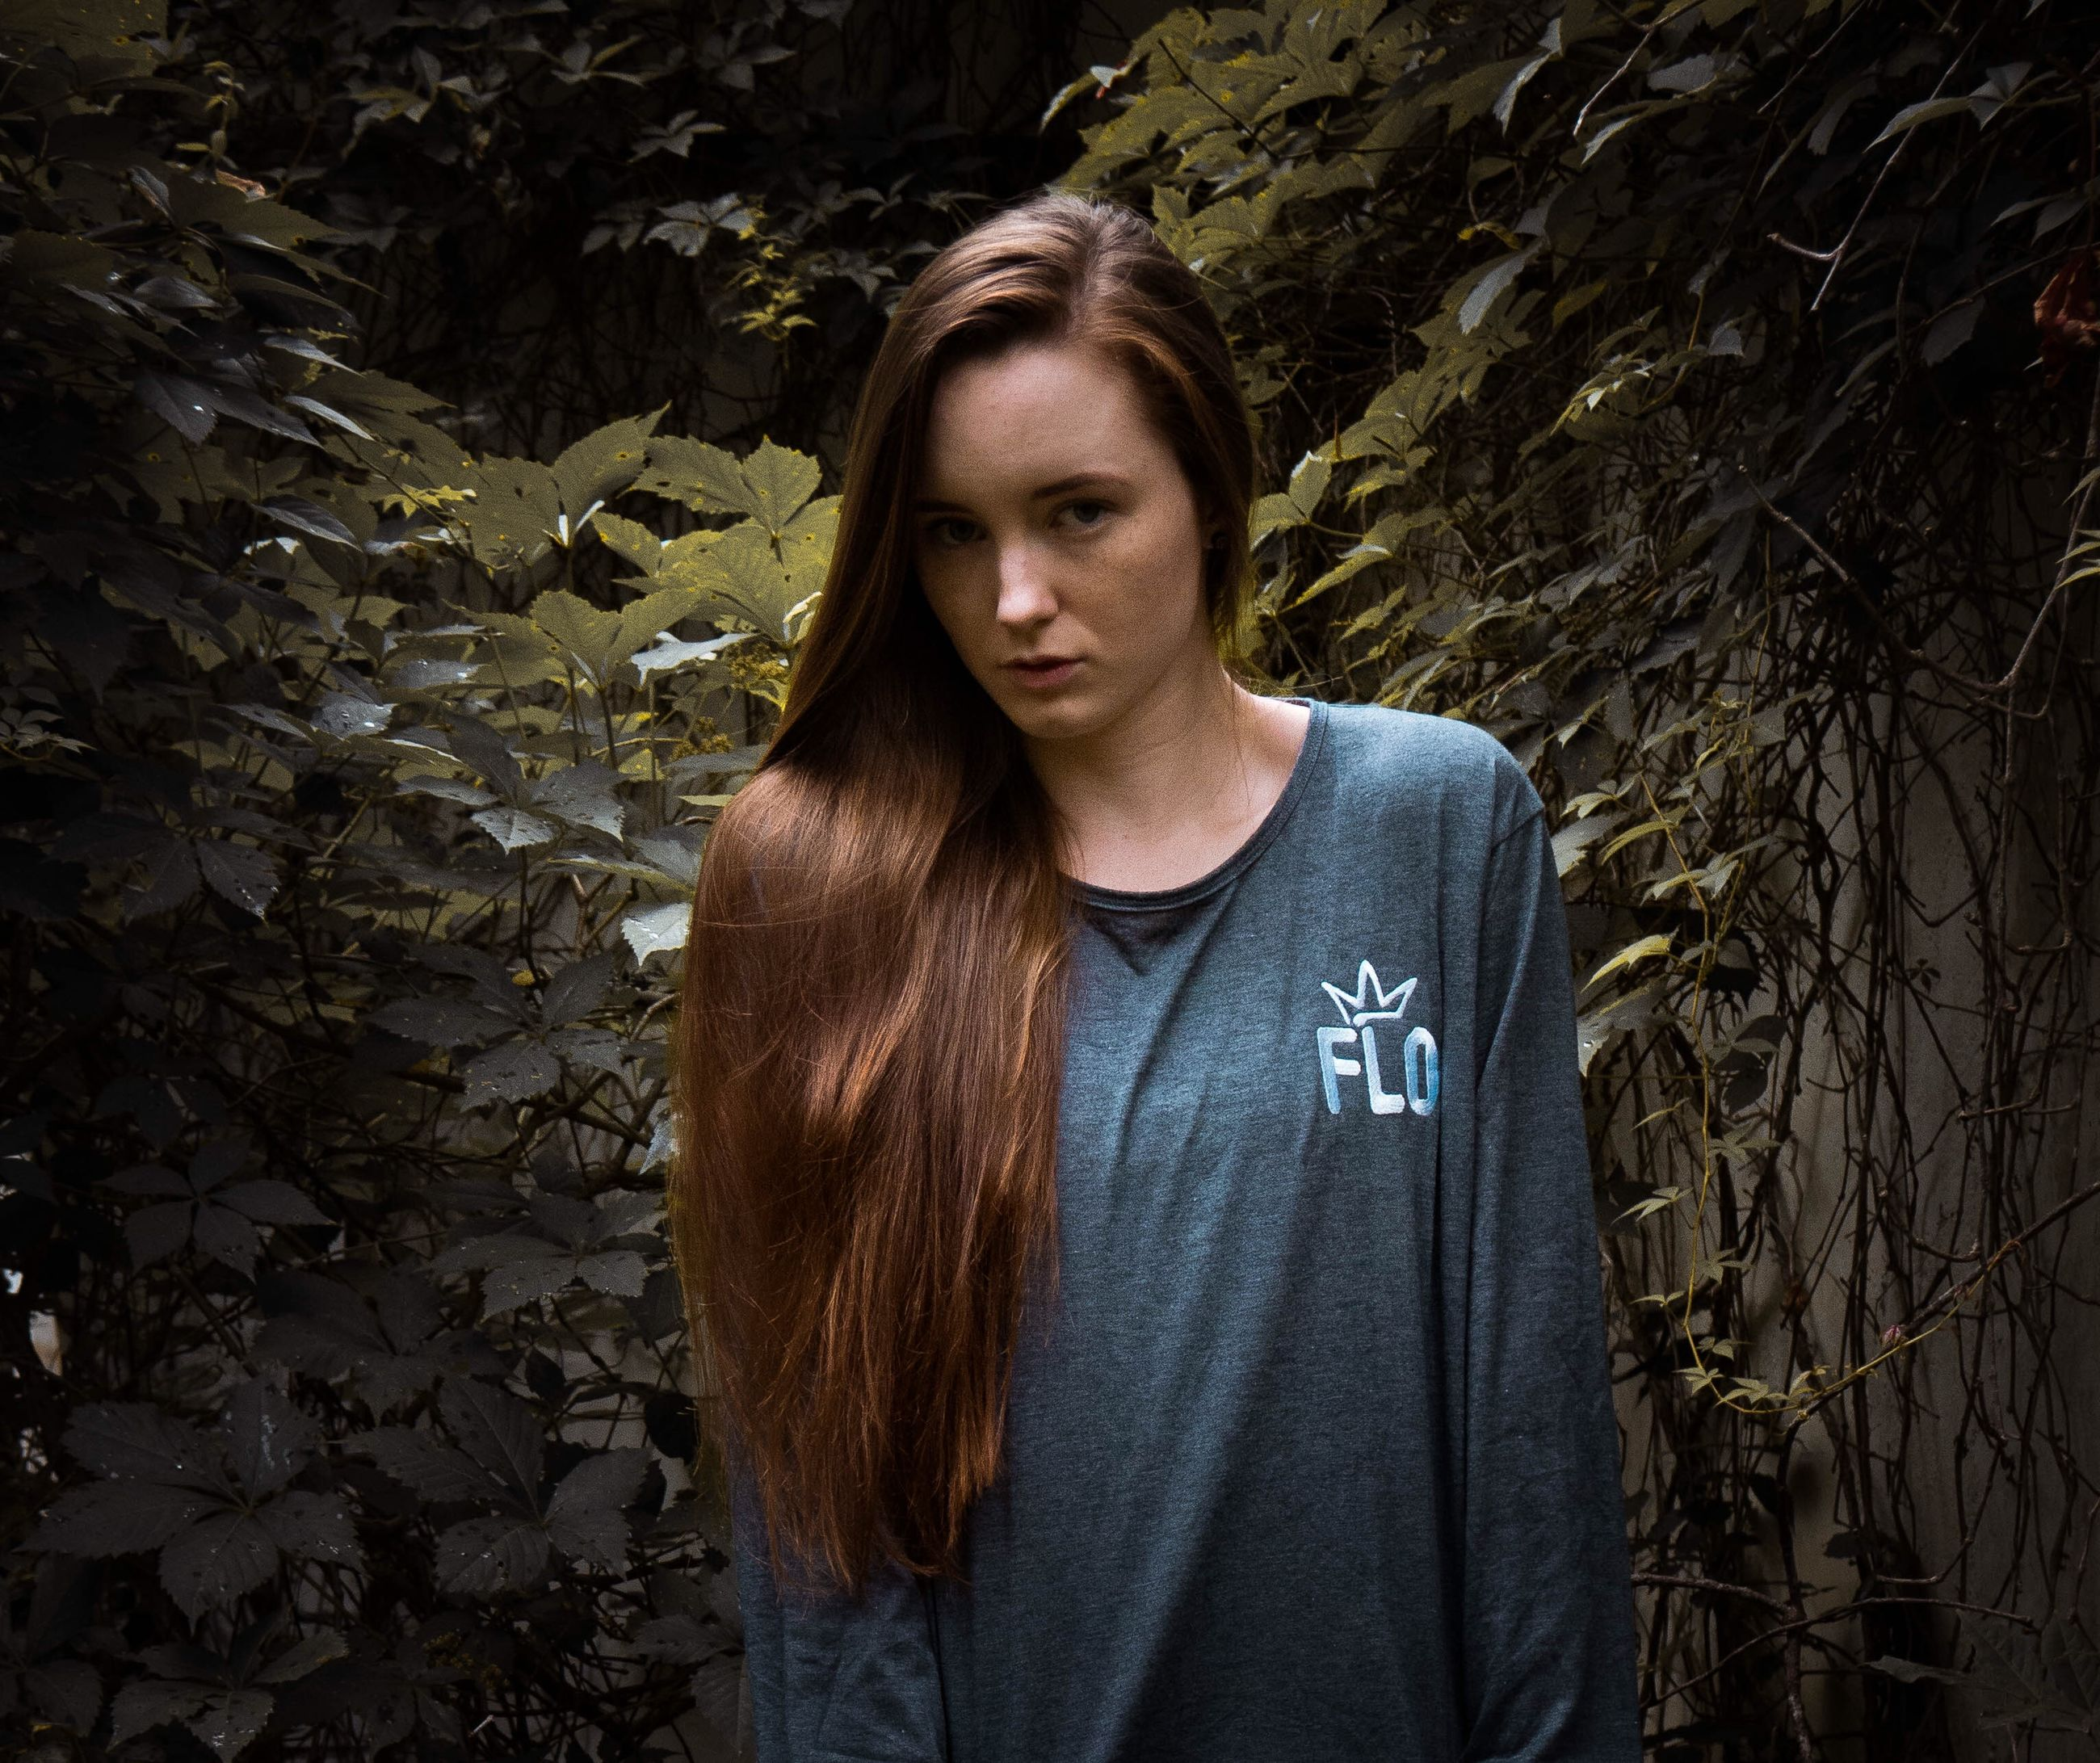 portrait, young adult, looking at camera, one person, front view, tree, standing, plant, leaf, plant part, casual clothing, young women, real people, beauty, forest, hairstyle, day, long hair, lifestyles, outdoors, beautiful woman, teenager, change, leaves